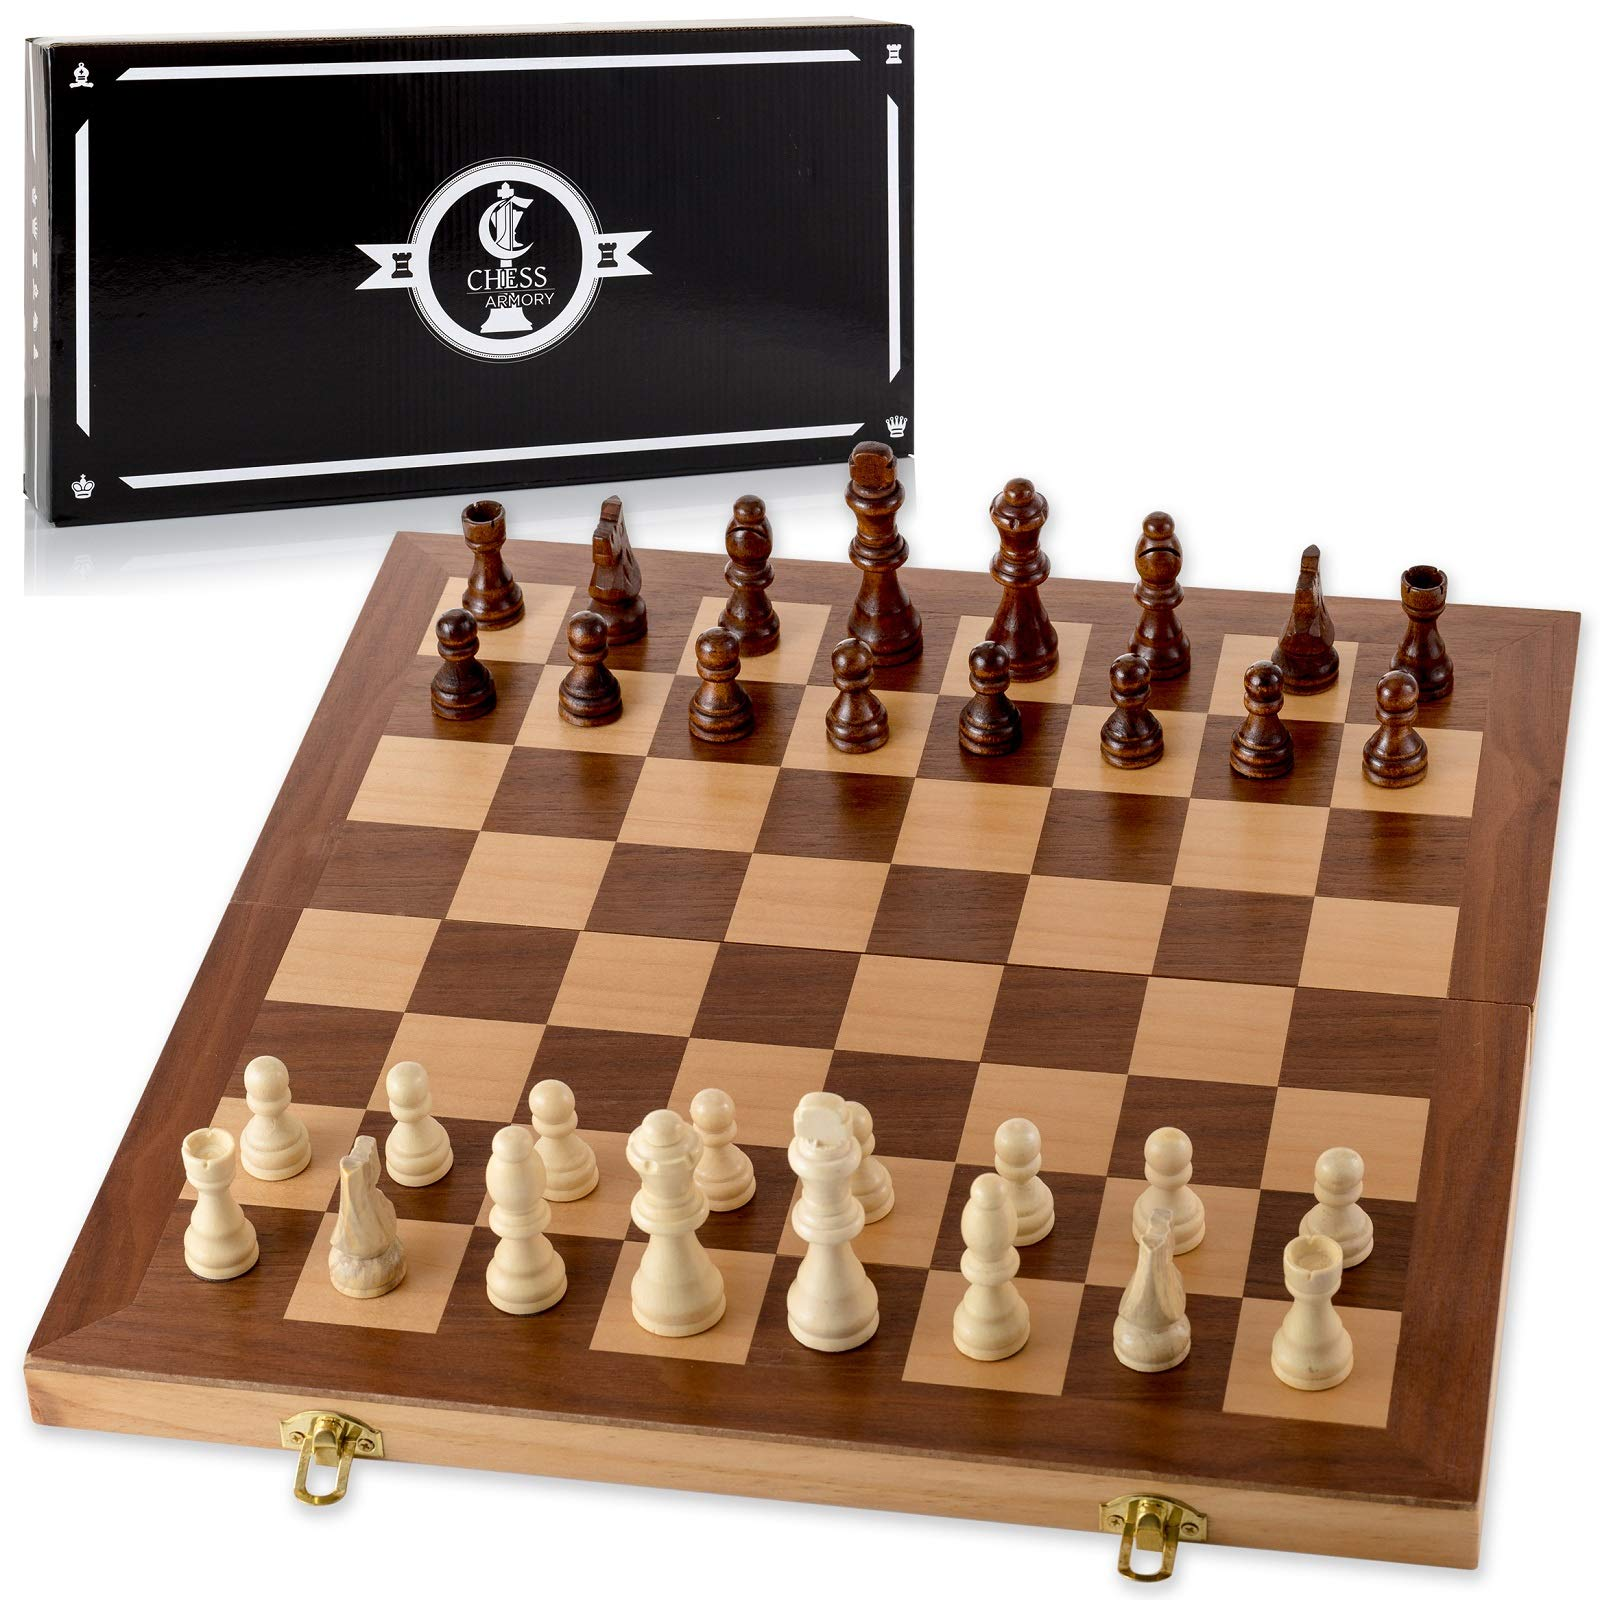 Chess Armory 15'' Wooden Chess Set with Felted Game Board Interior for Storage by Chess Armory